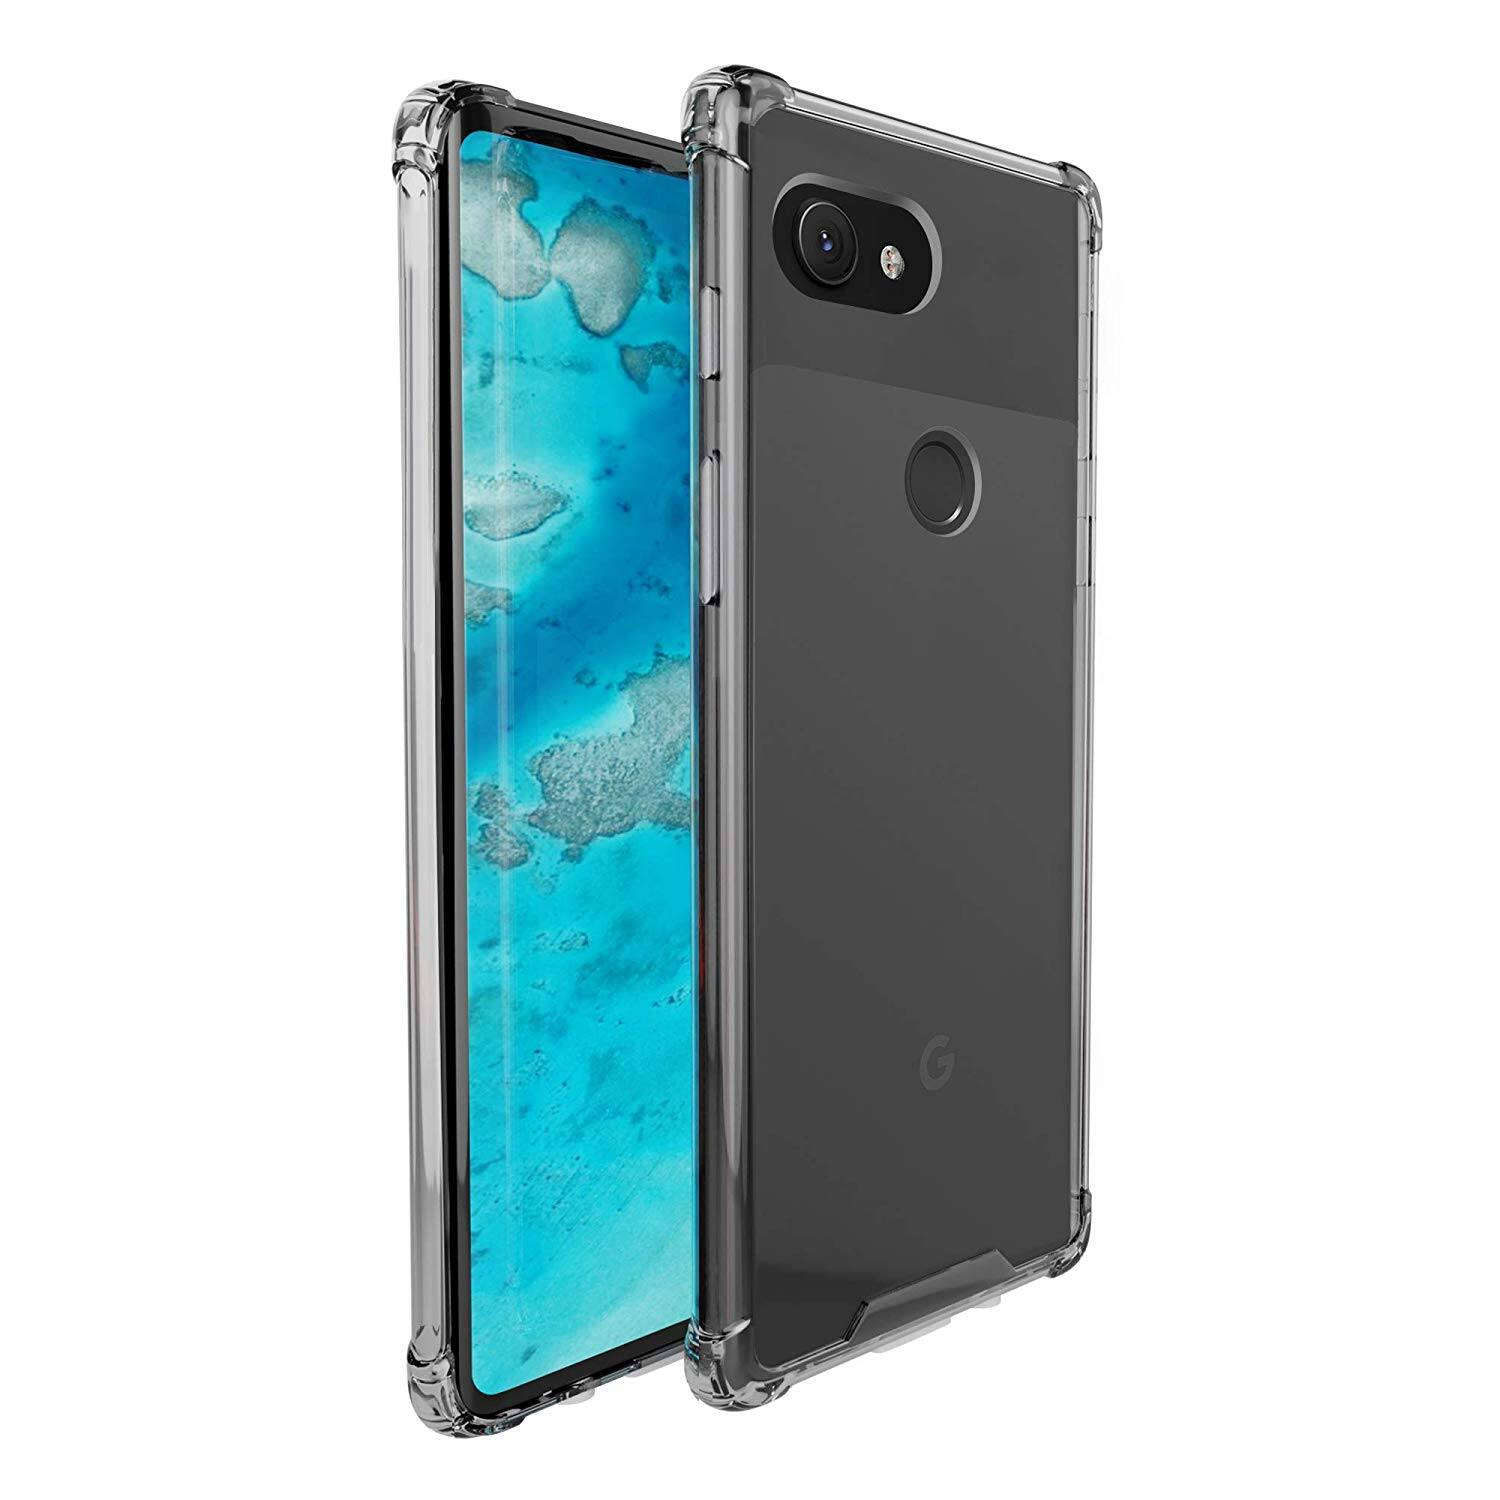 finest selection 1b9f2 f8ae8 amCase Clear Bumper Case for Google Pixel 3a XL - Slickdeals.net